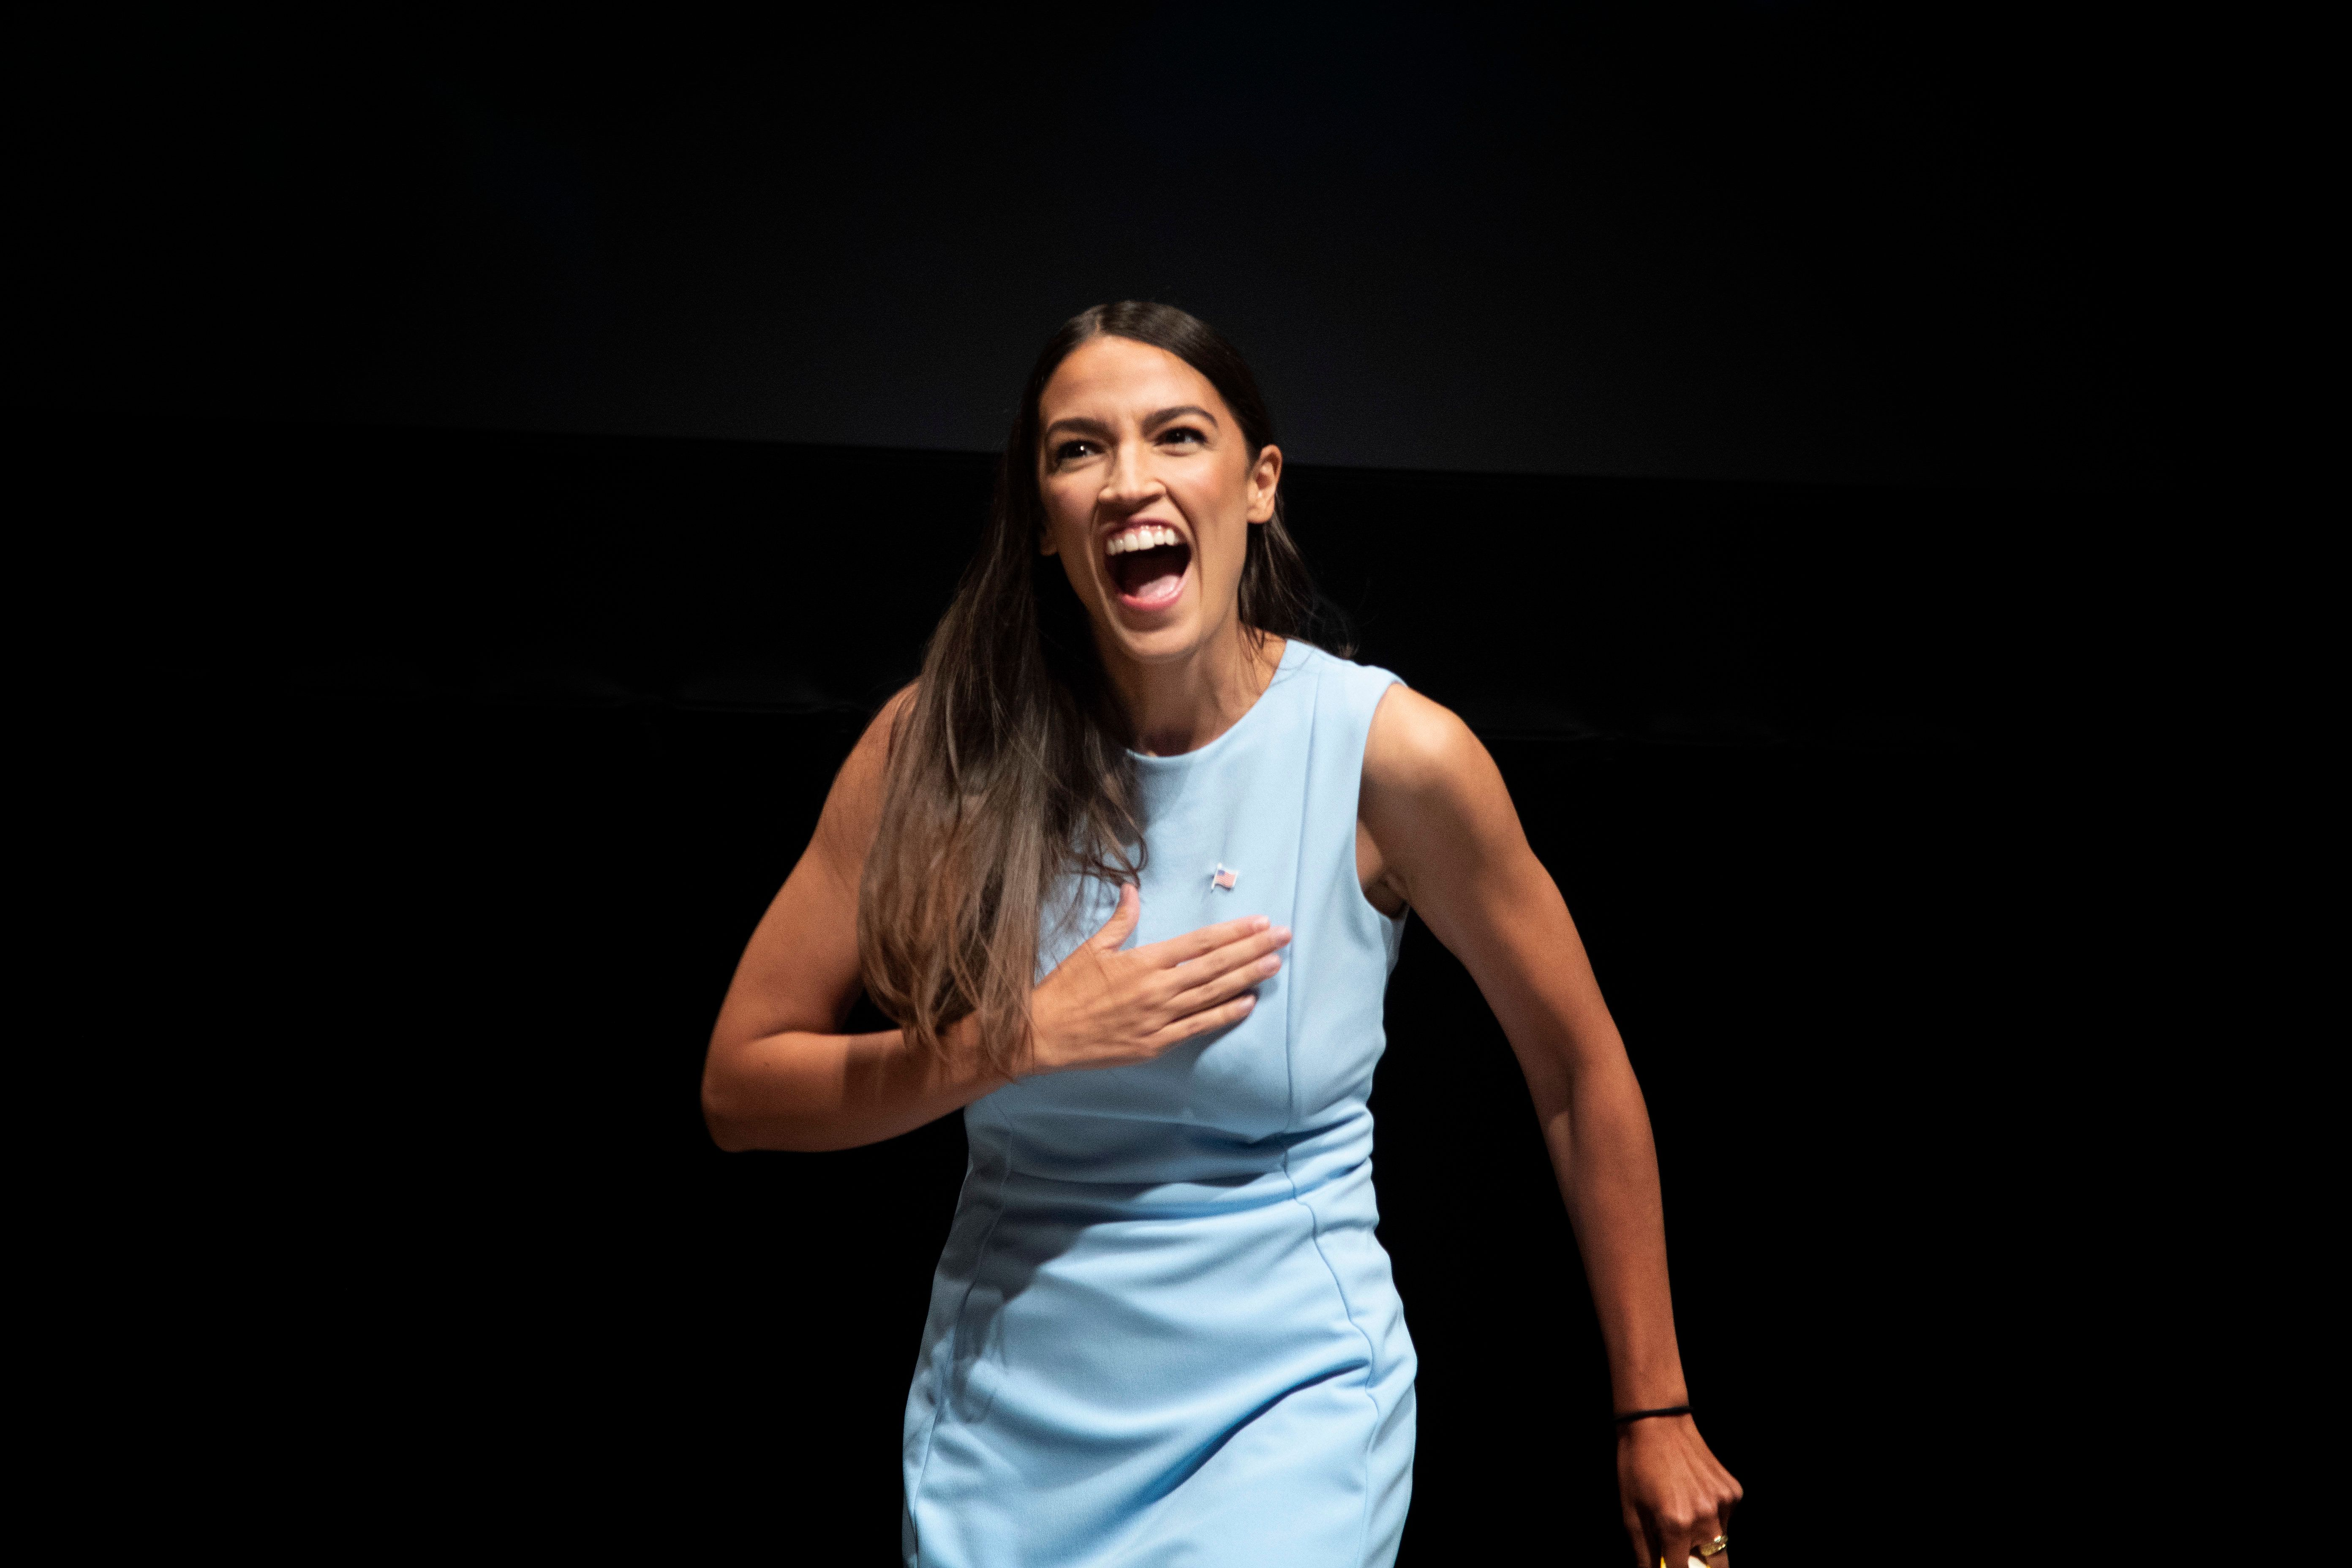 Alexandria Ocasio-Cortez is running in New York City's heavily Democratic 14th Congressional District.